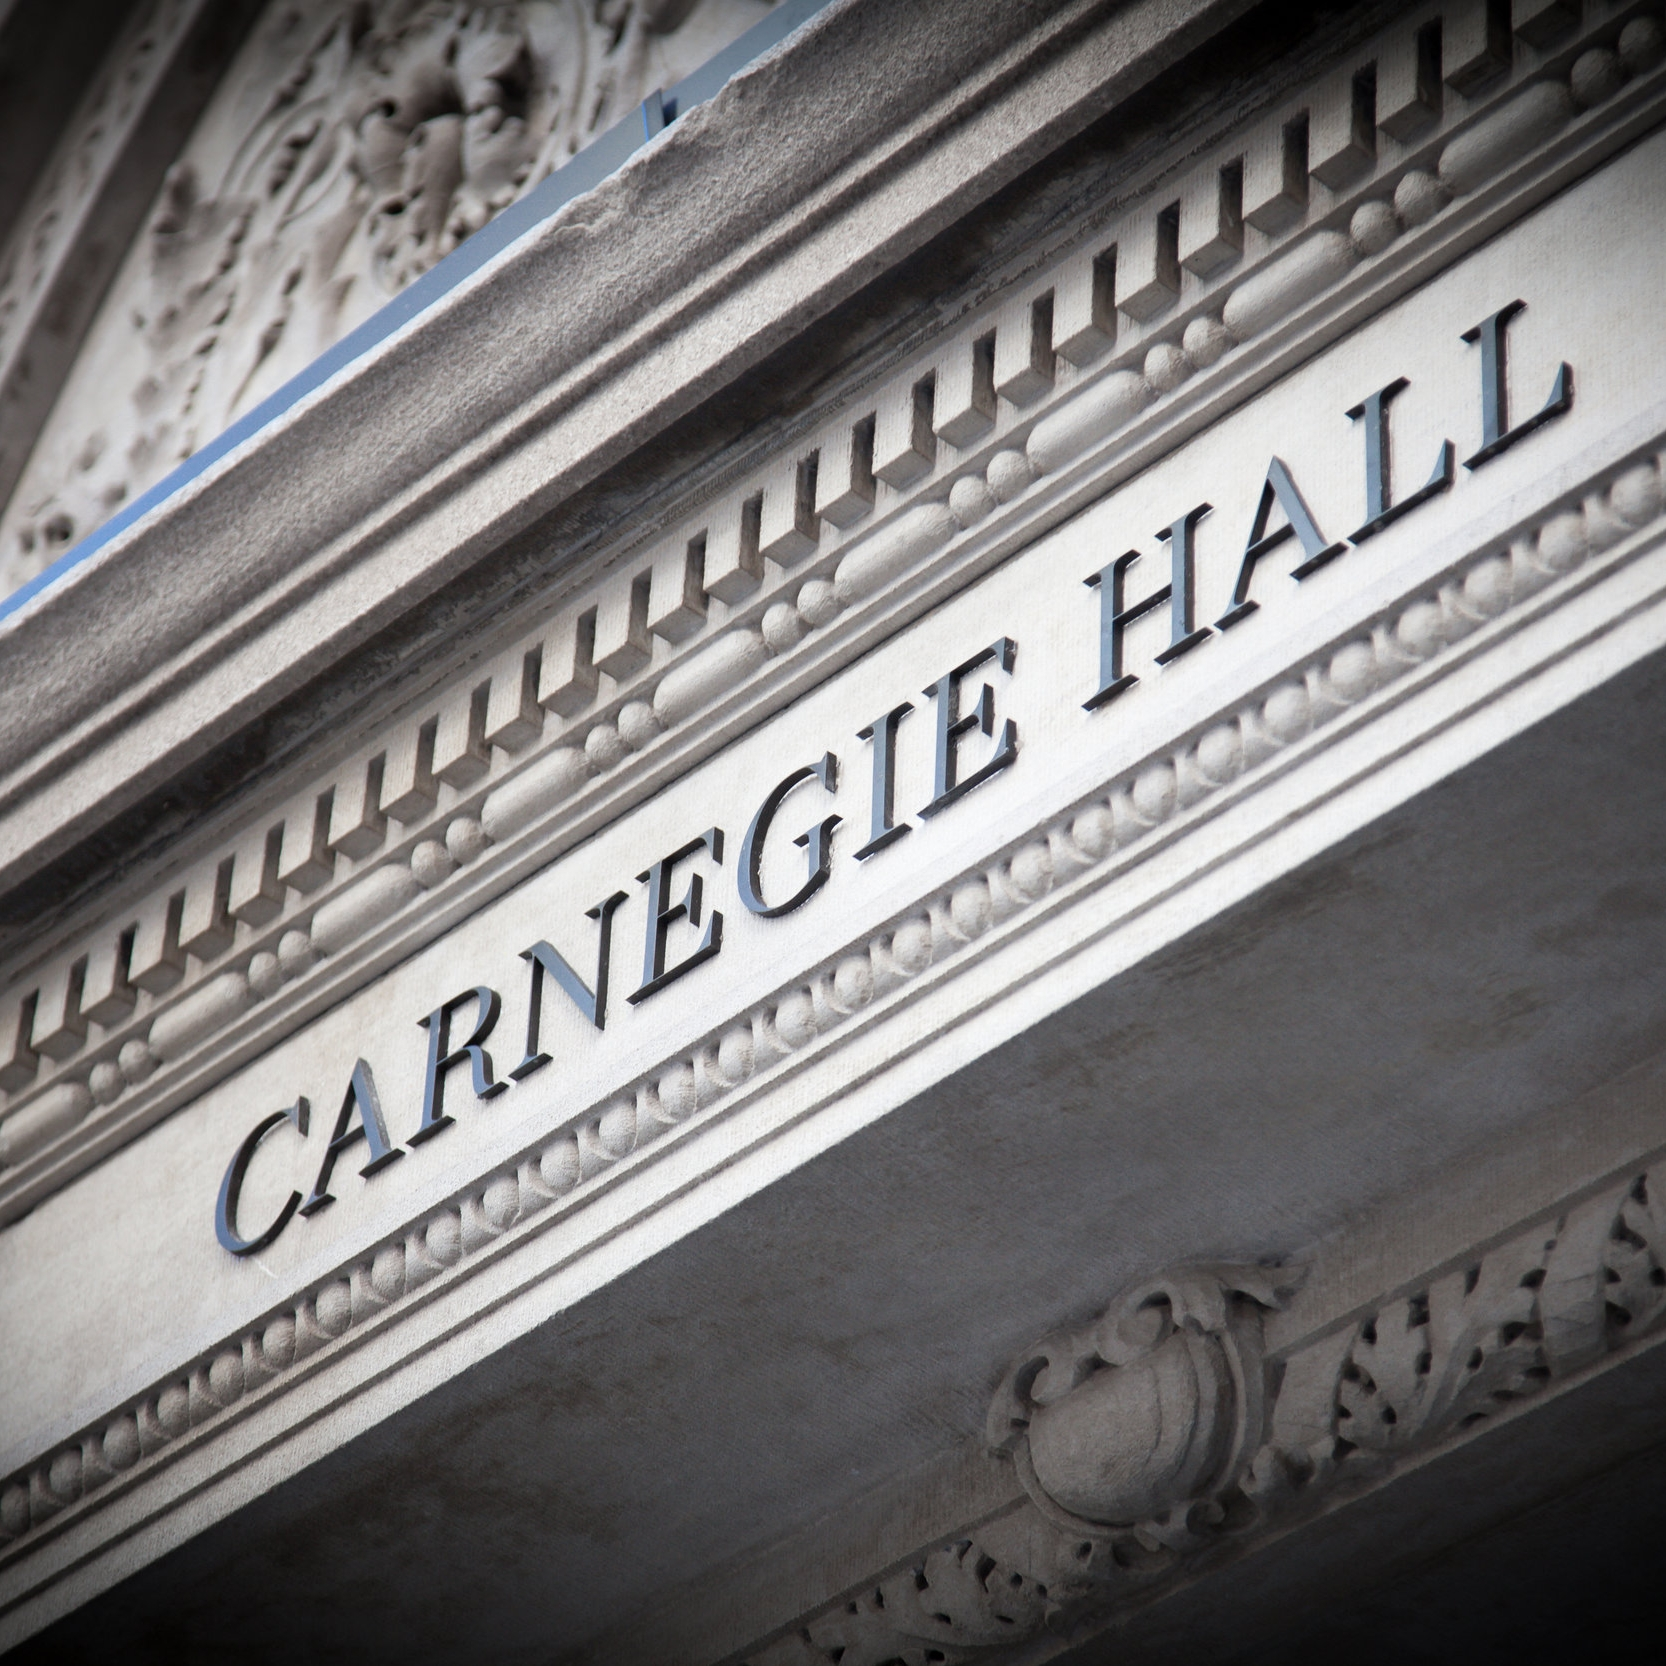 21803-Carnegie-Music-Hall-2012.jpg